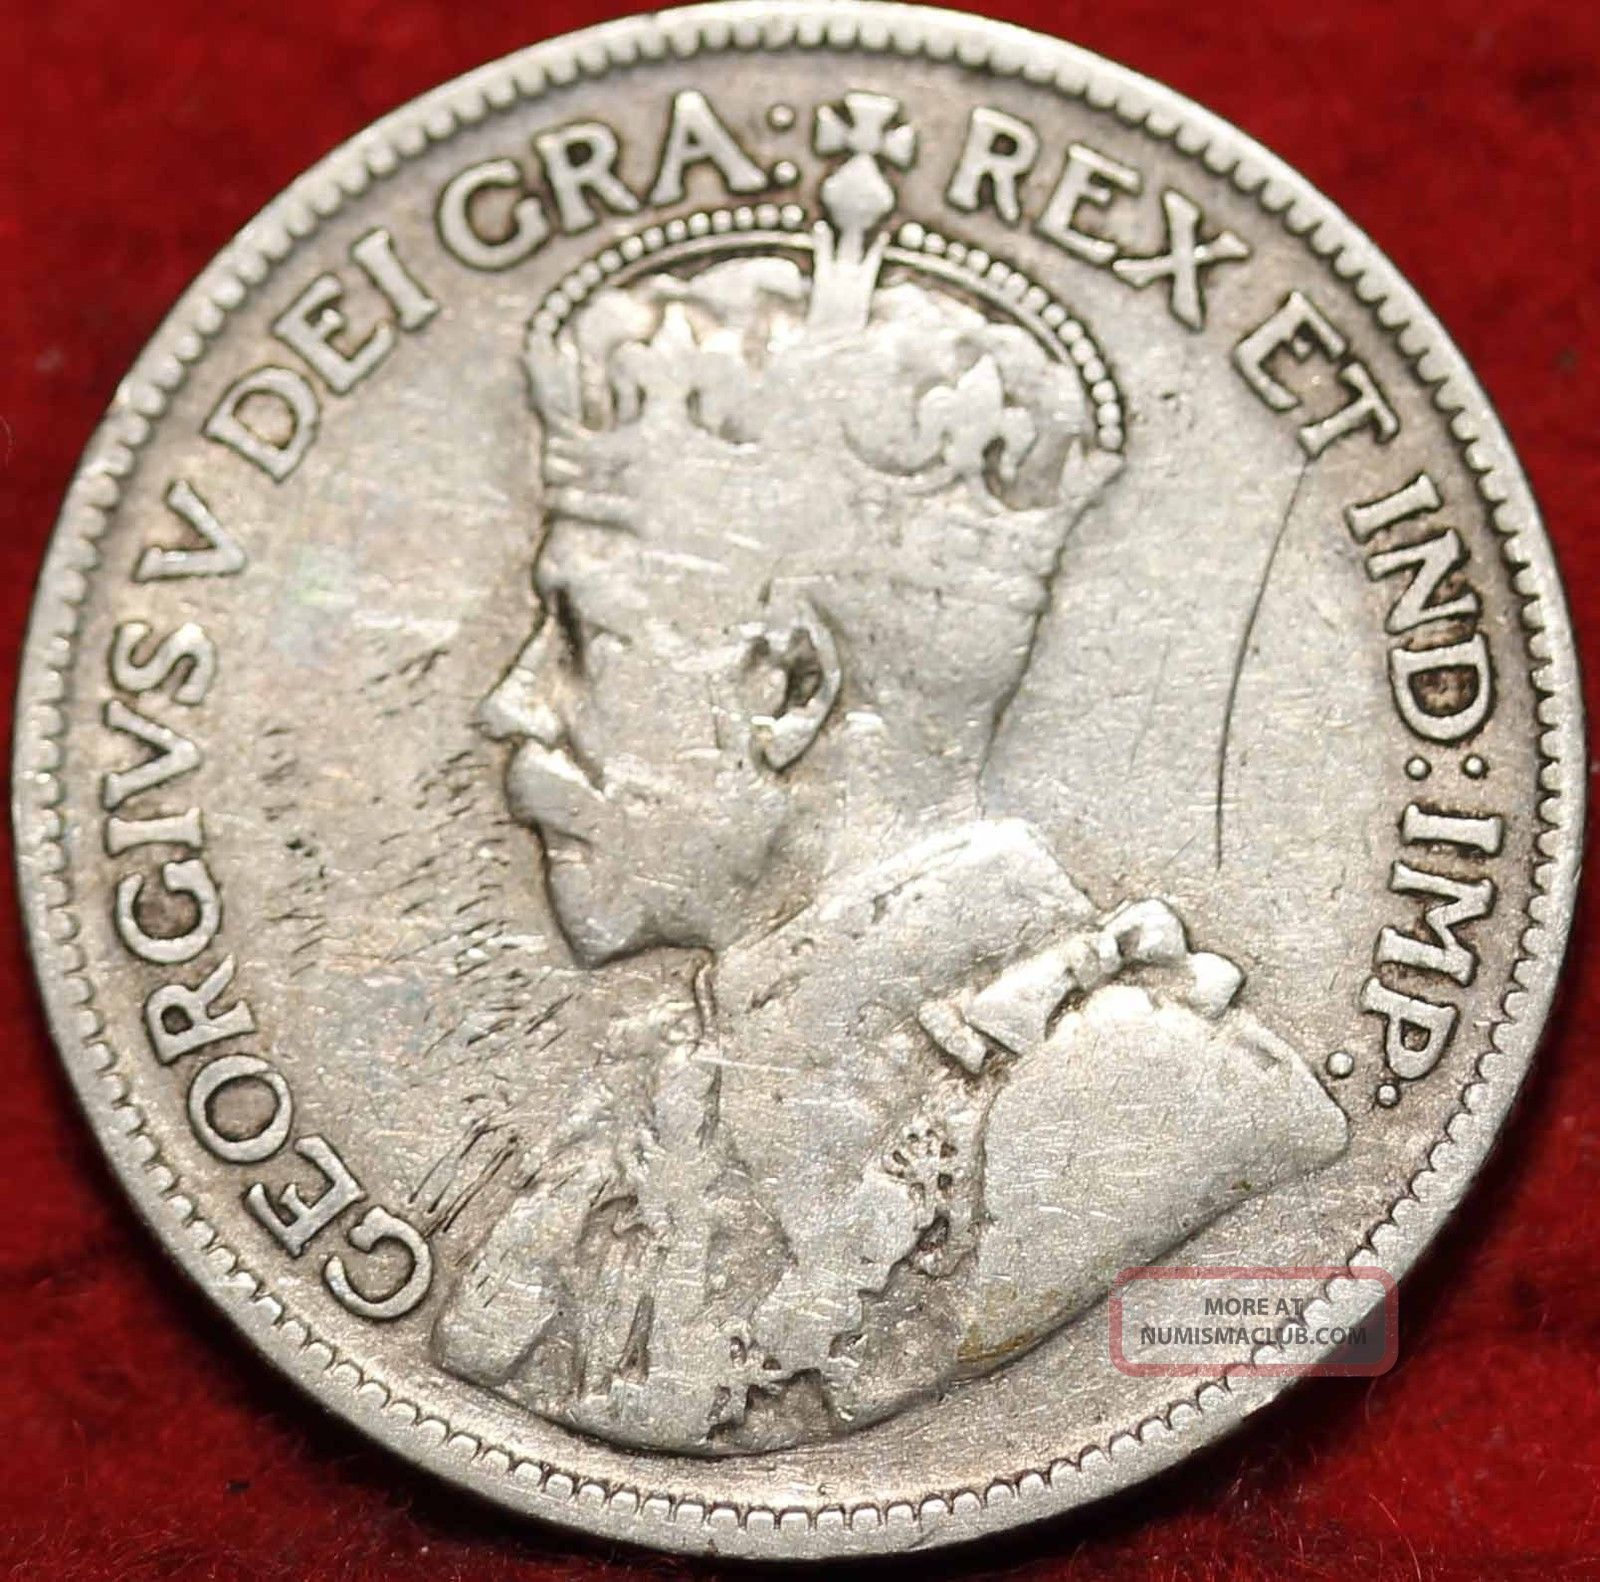 1934 Canada Silver 25 Cents Foreign Coin S/h Coins: Canada photo